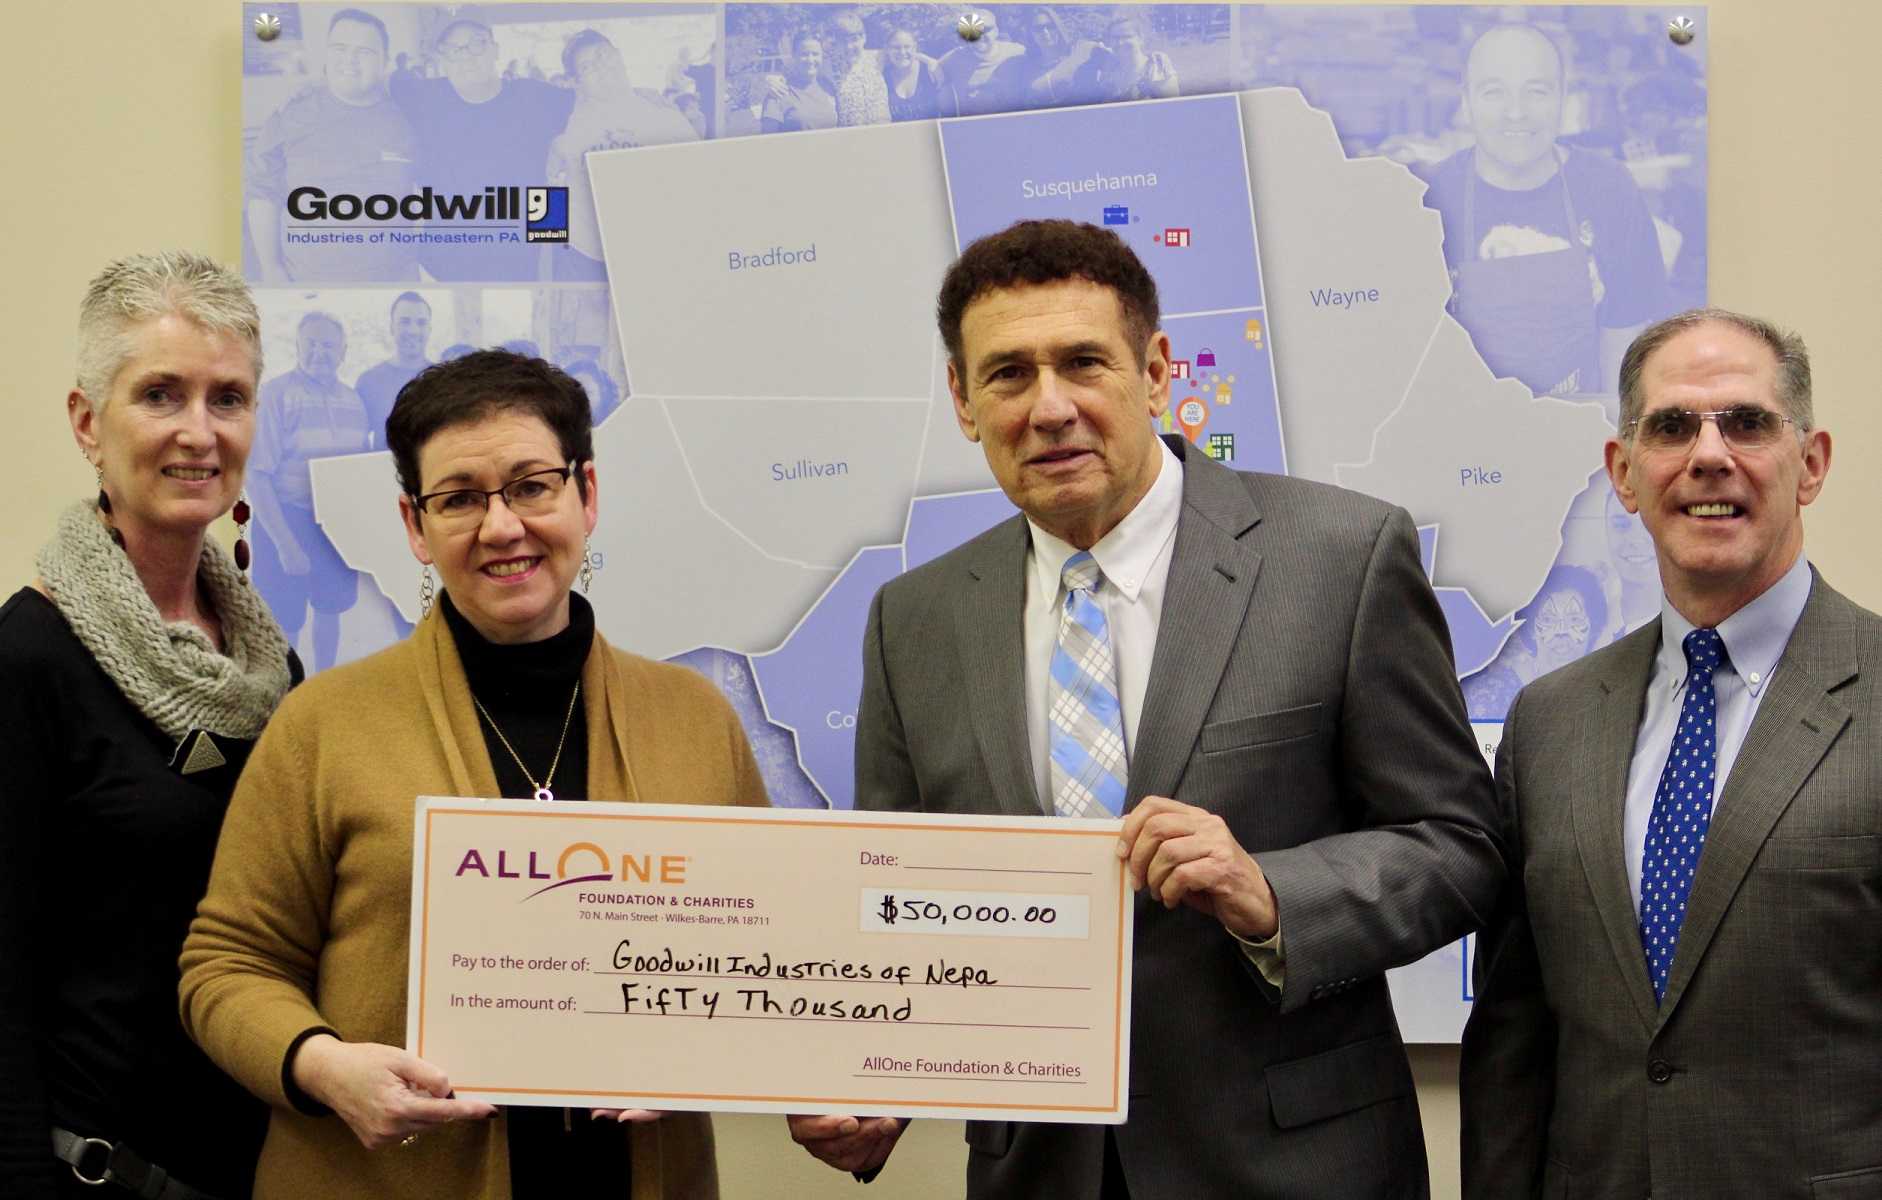 Goodwill Industries of NEPA